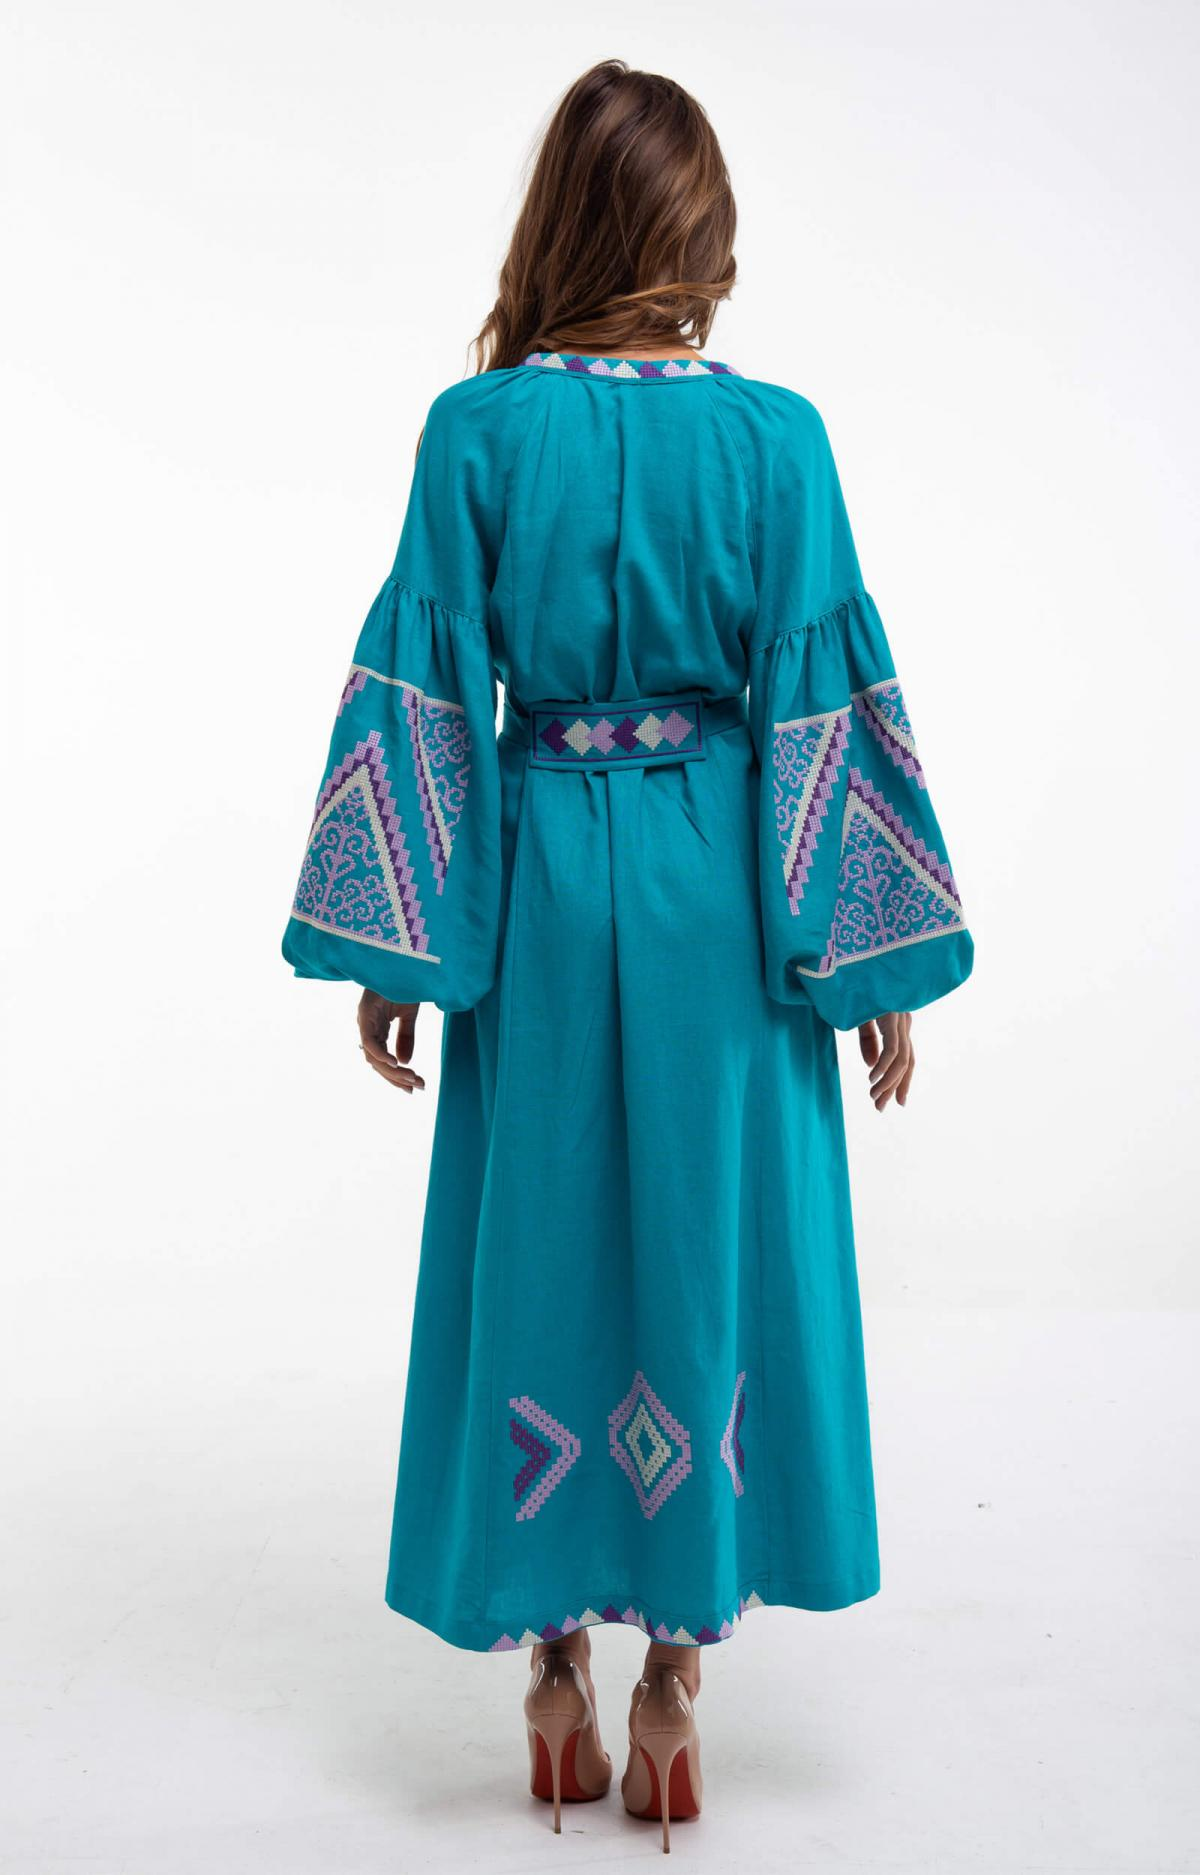 Embroidered long dress of turquoise color. Photo №3. | Narodnyi dim Ukraine